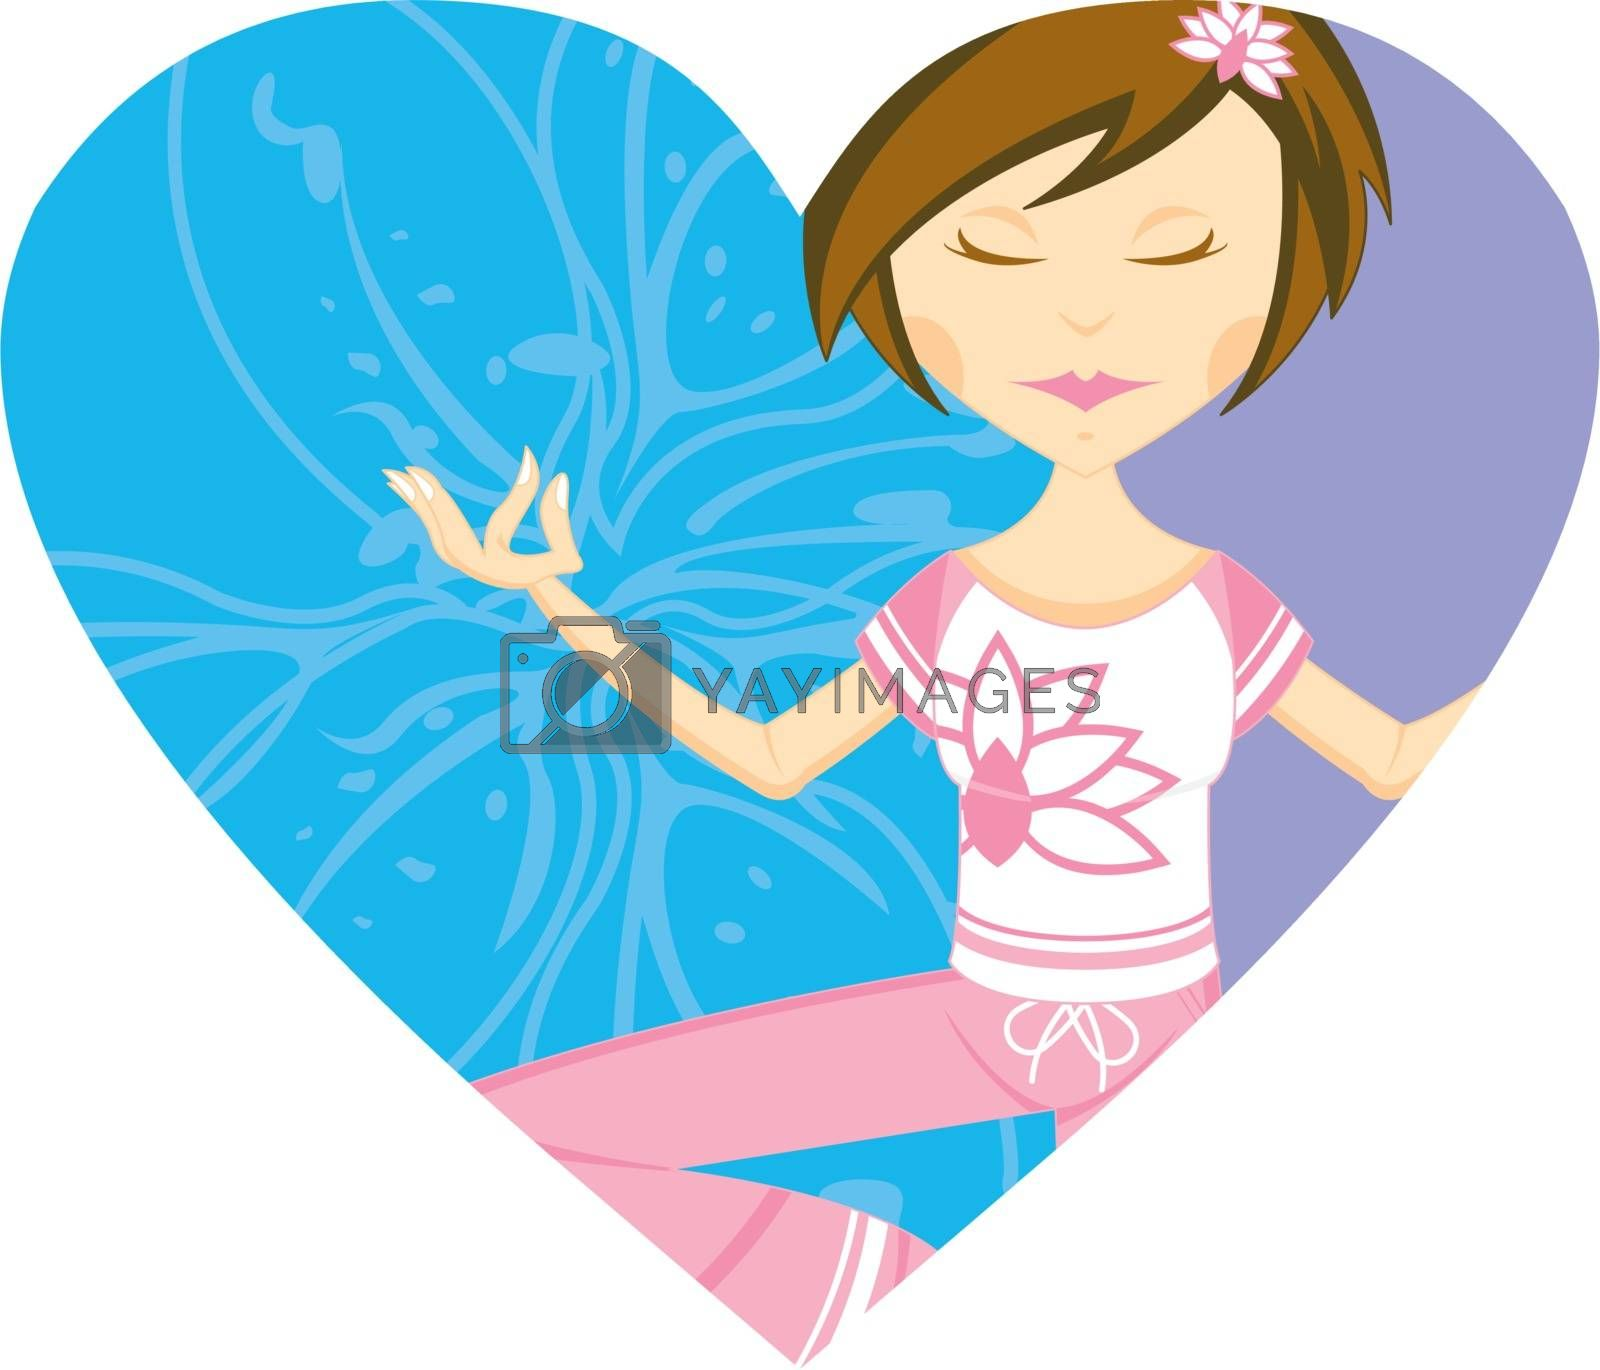 Cartoon Yoga Girl with Flower in Silhouette on a Valentine Heart Illustration by Mark Murphy Creative